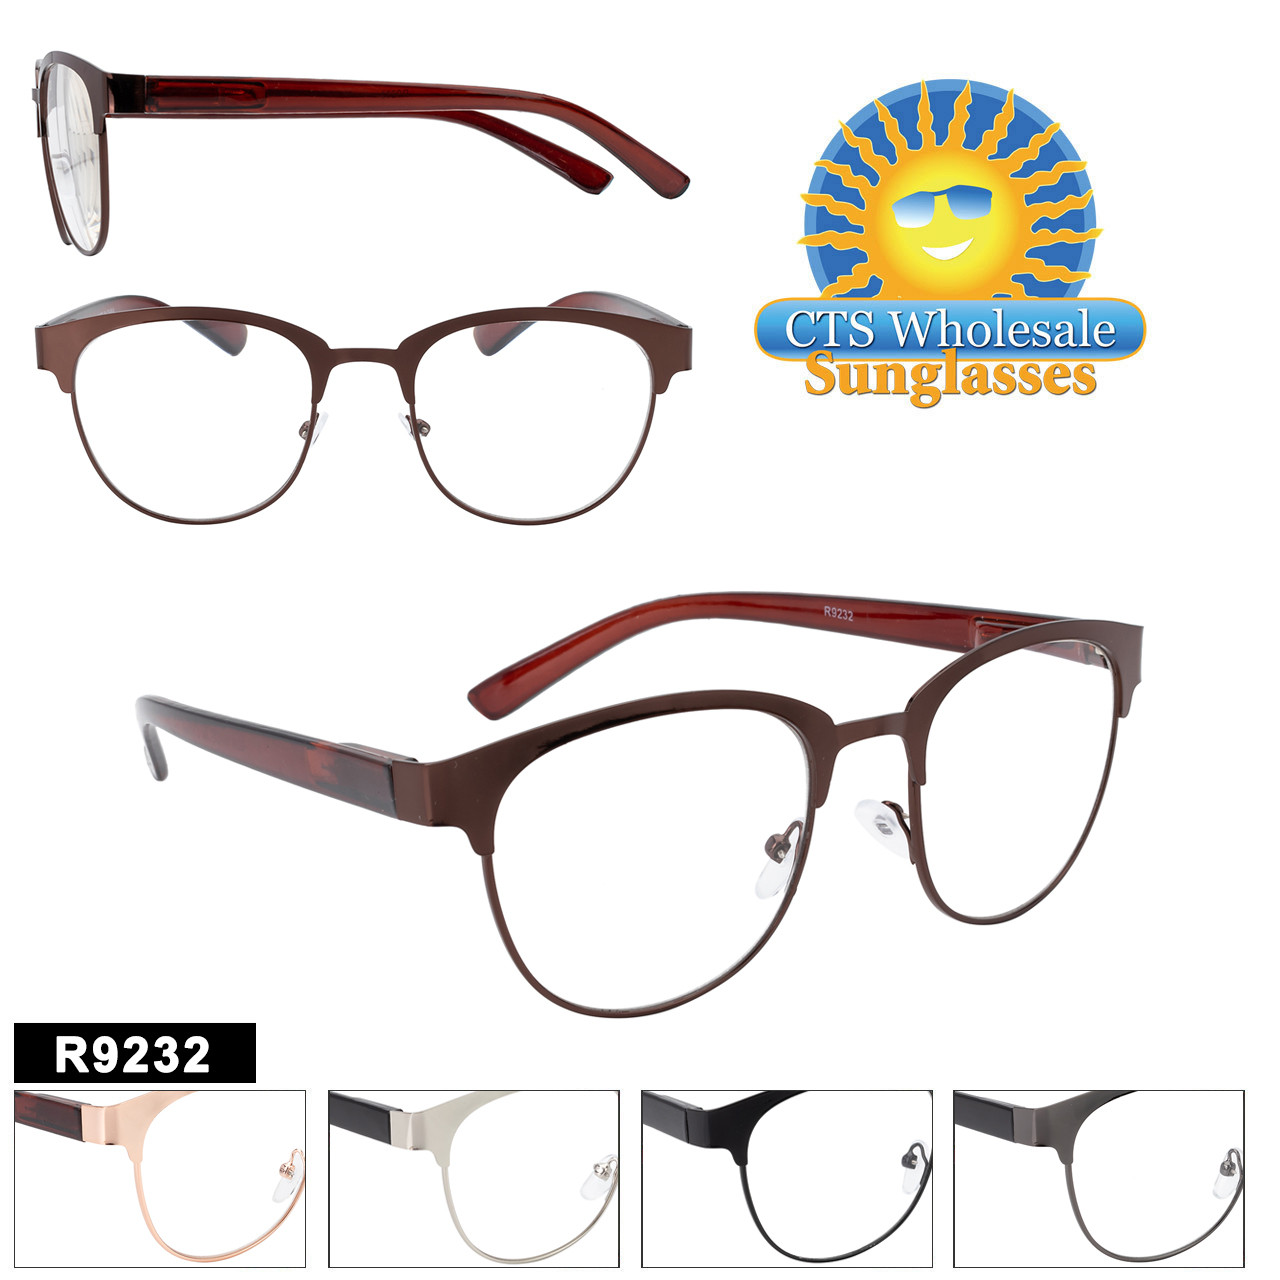 High Fashion Readers!  Great quality with spring hinges for extra comfort while wearing.  This style comes in 5 great colors.